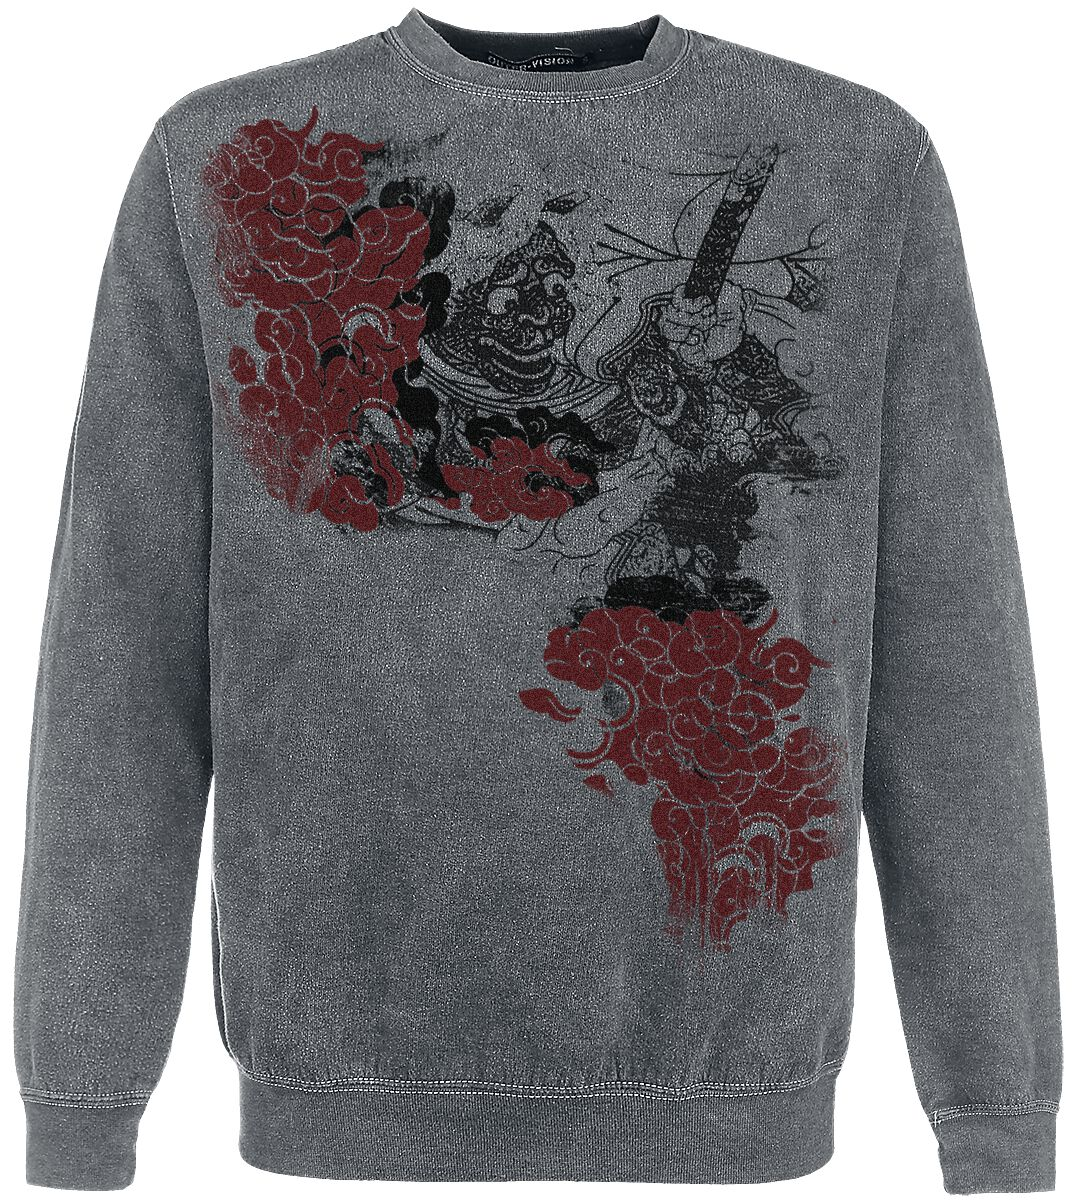 Image of   Outer Vision Demon Tattoo Sweatshirt grå